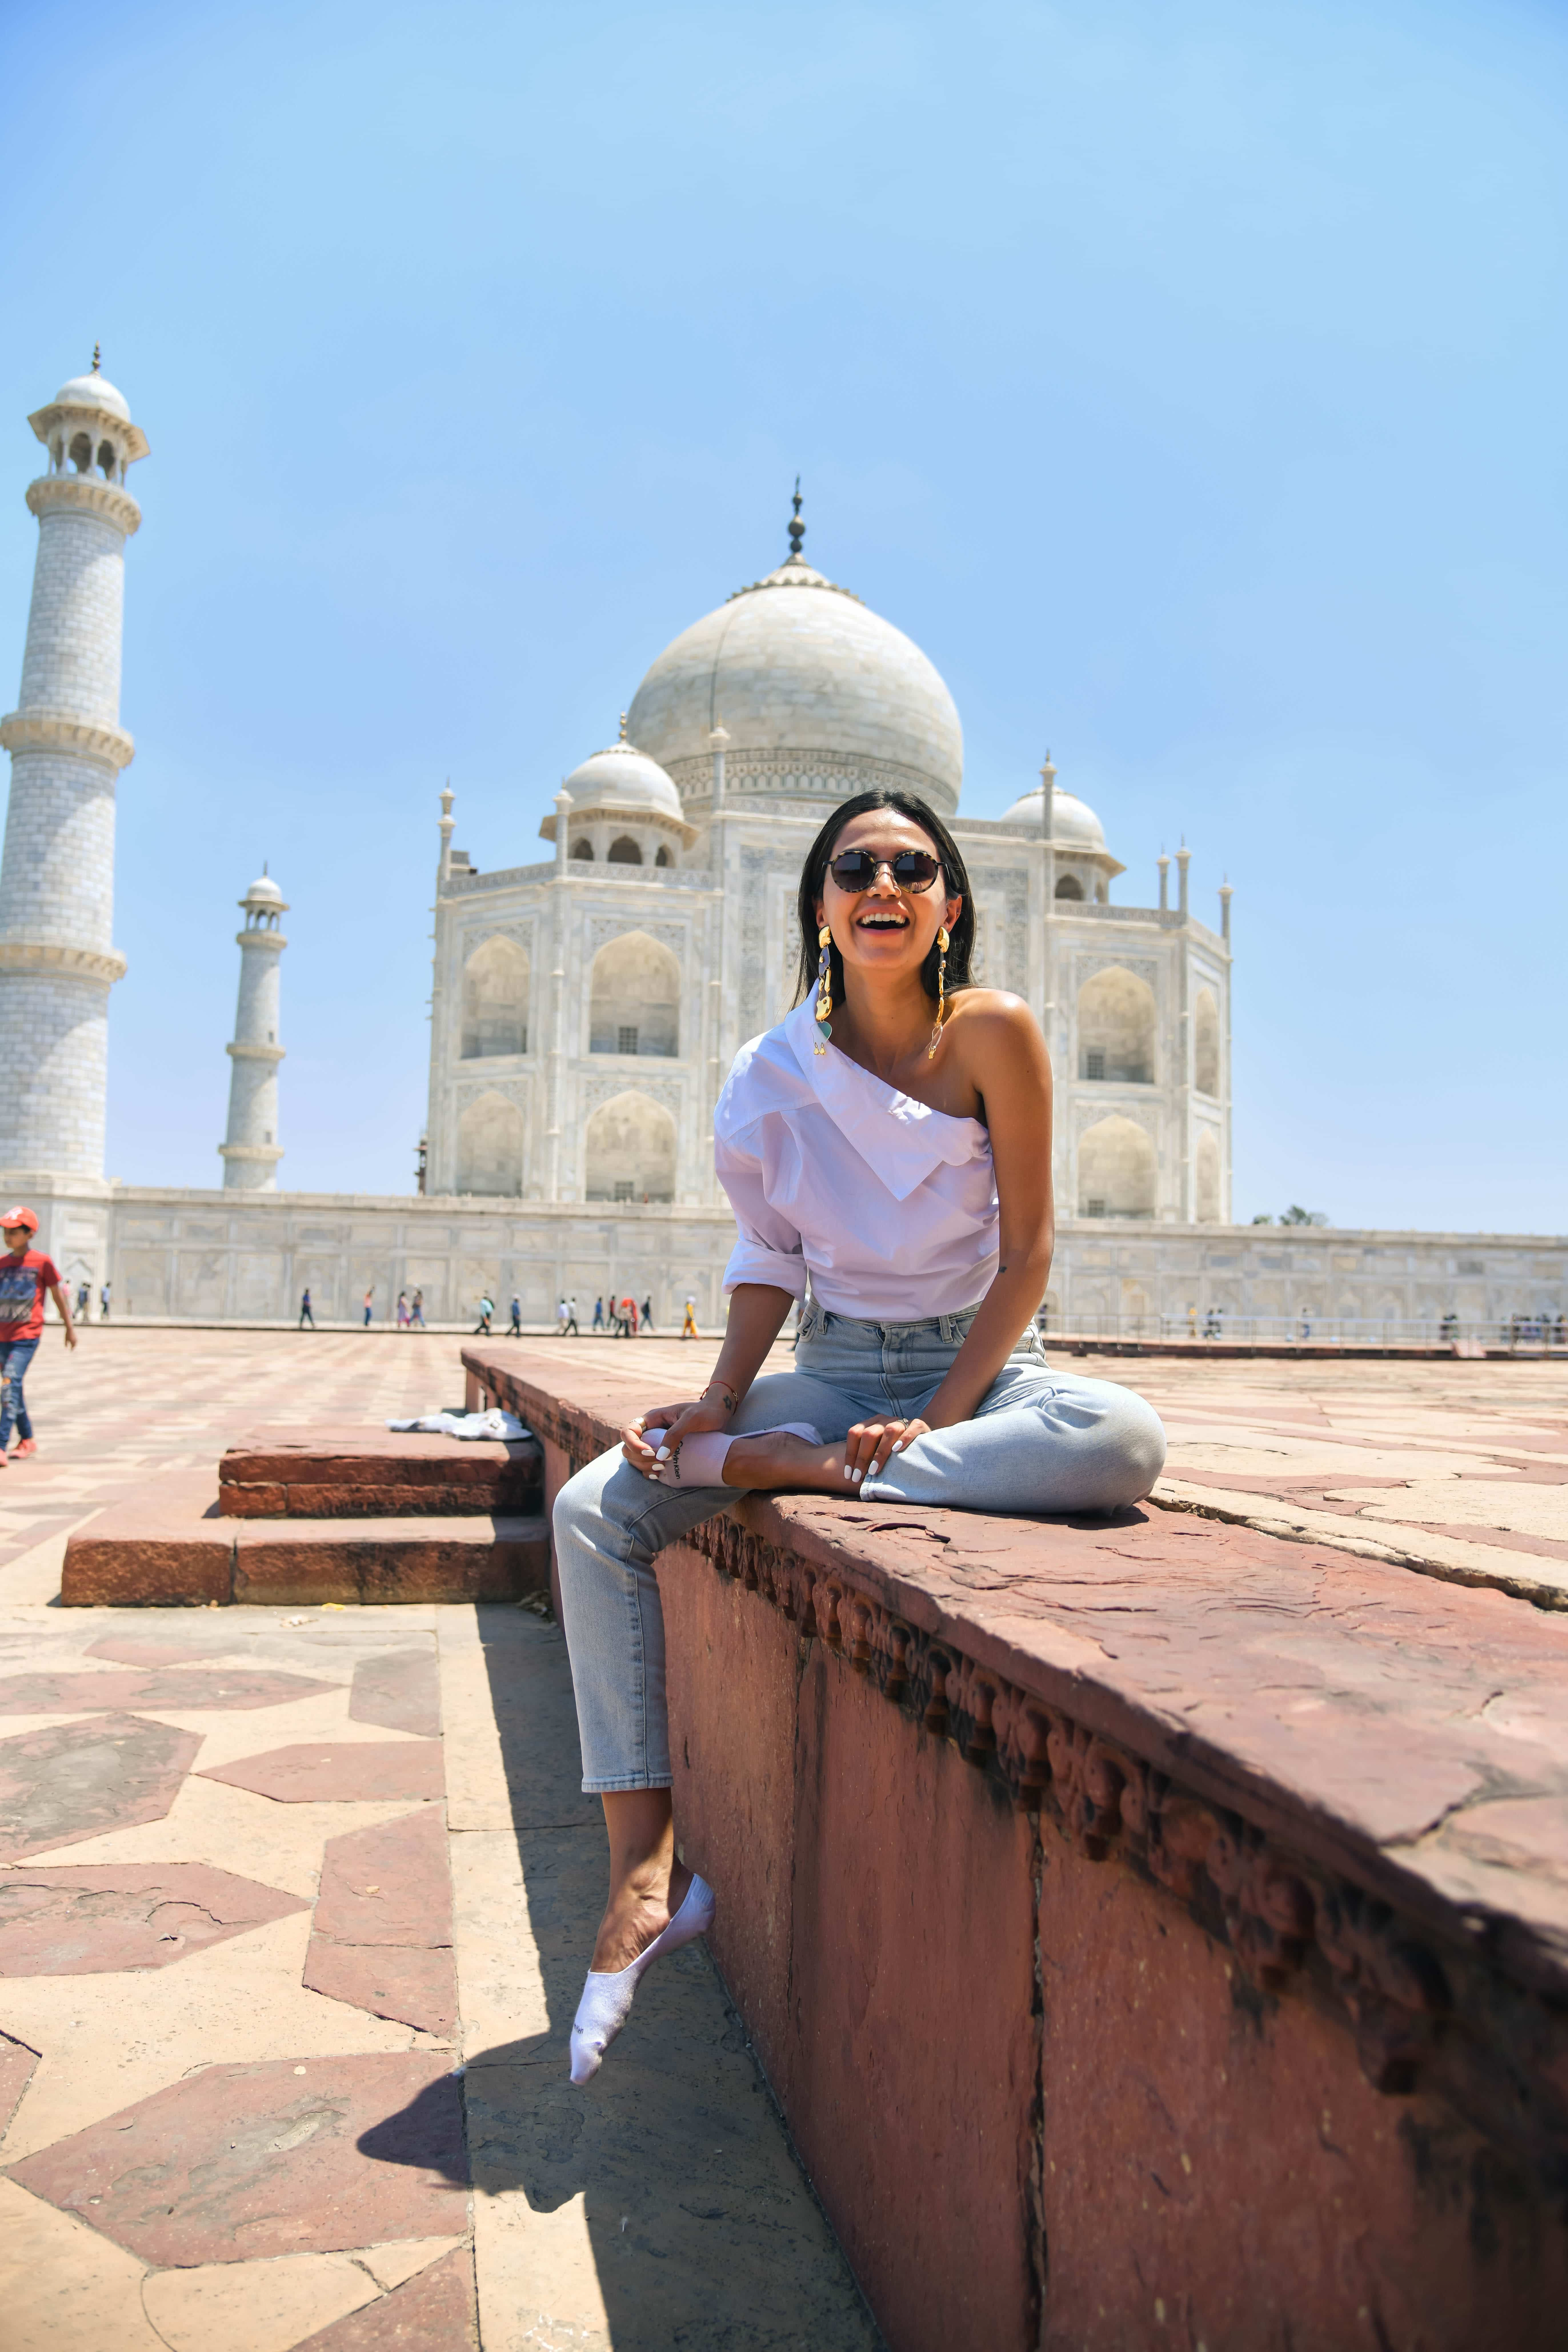 Global influencer Diipa Büller-Khosla on how to look Instagram-ready while traveling